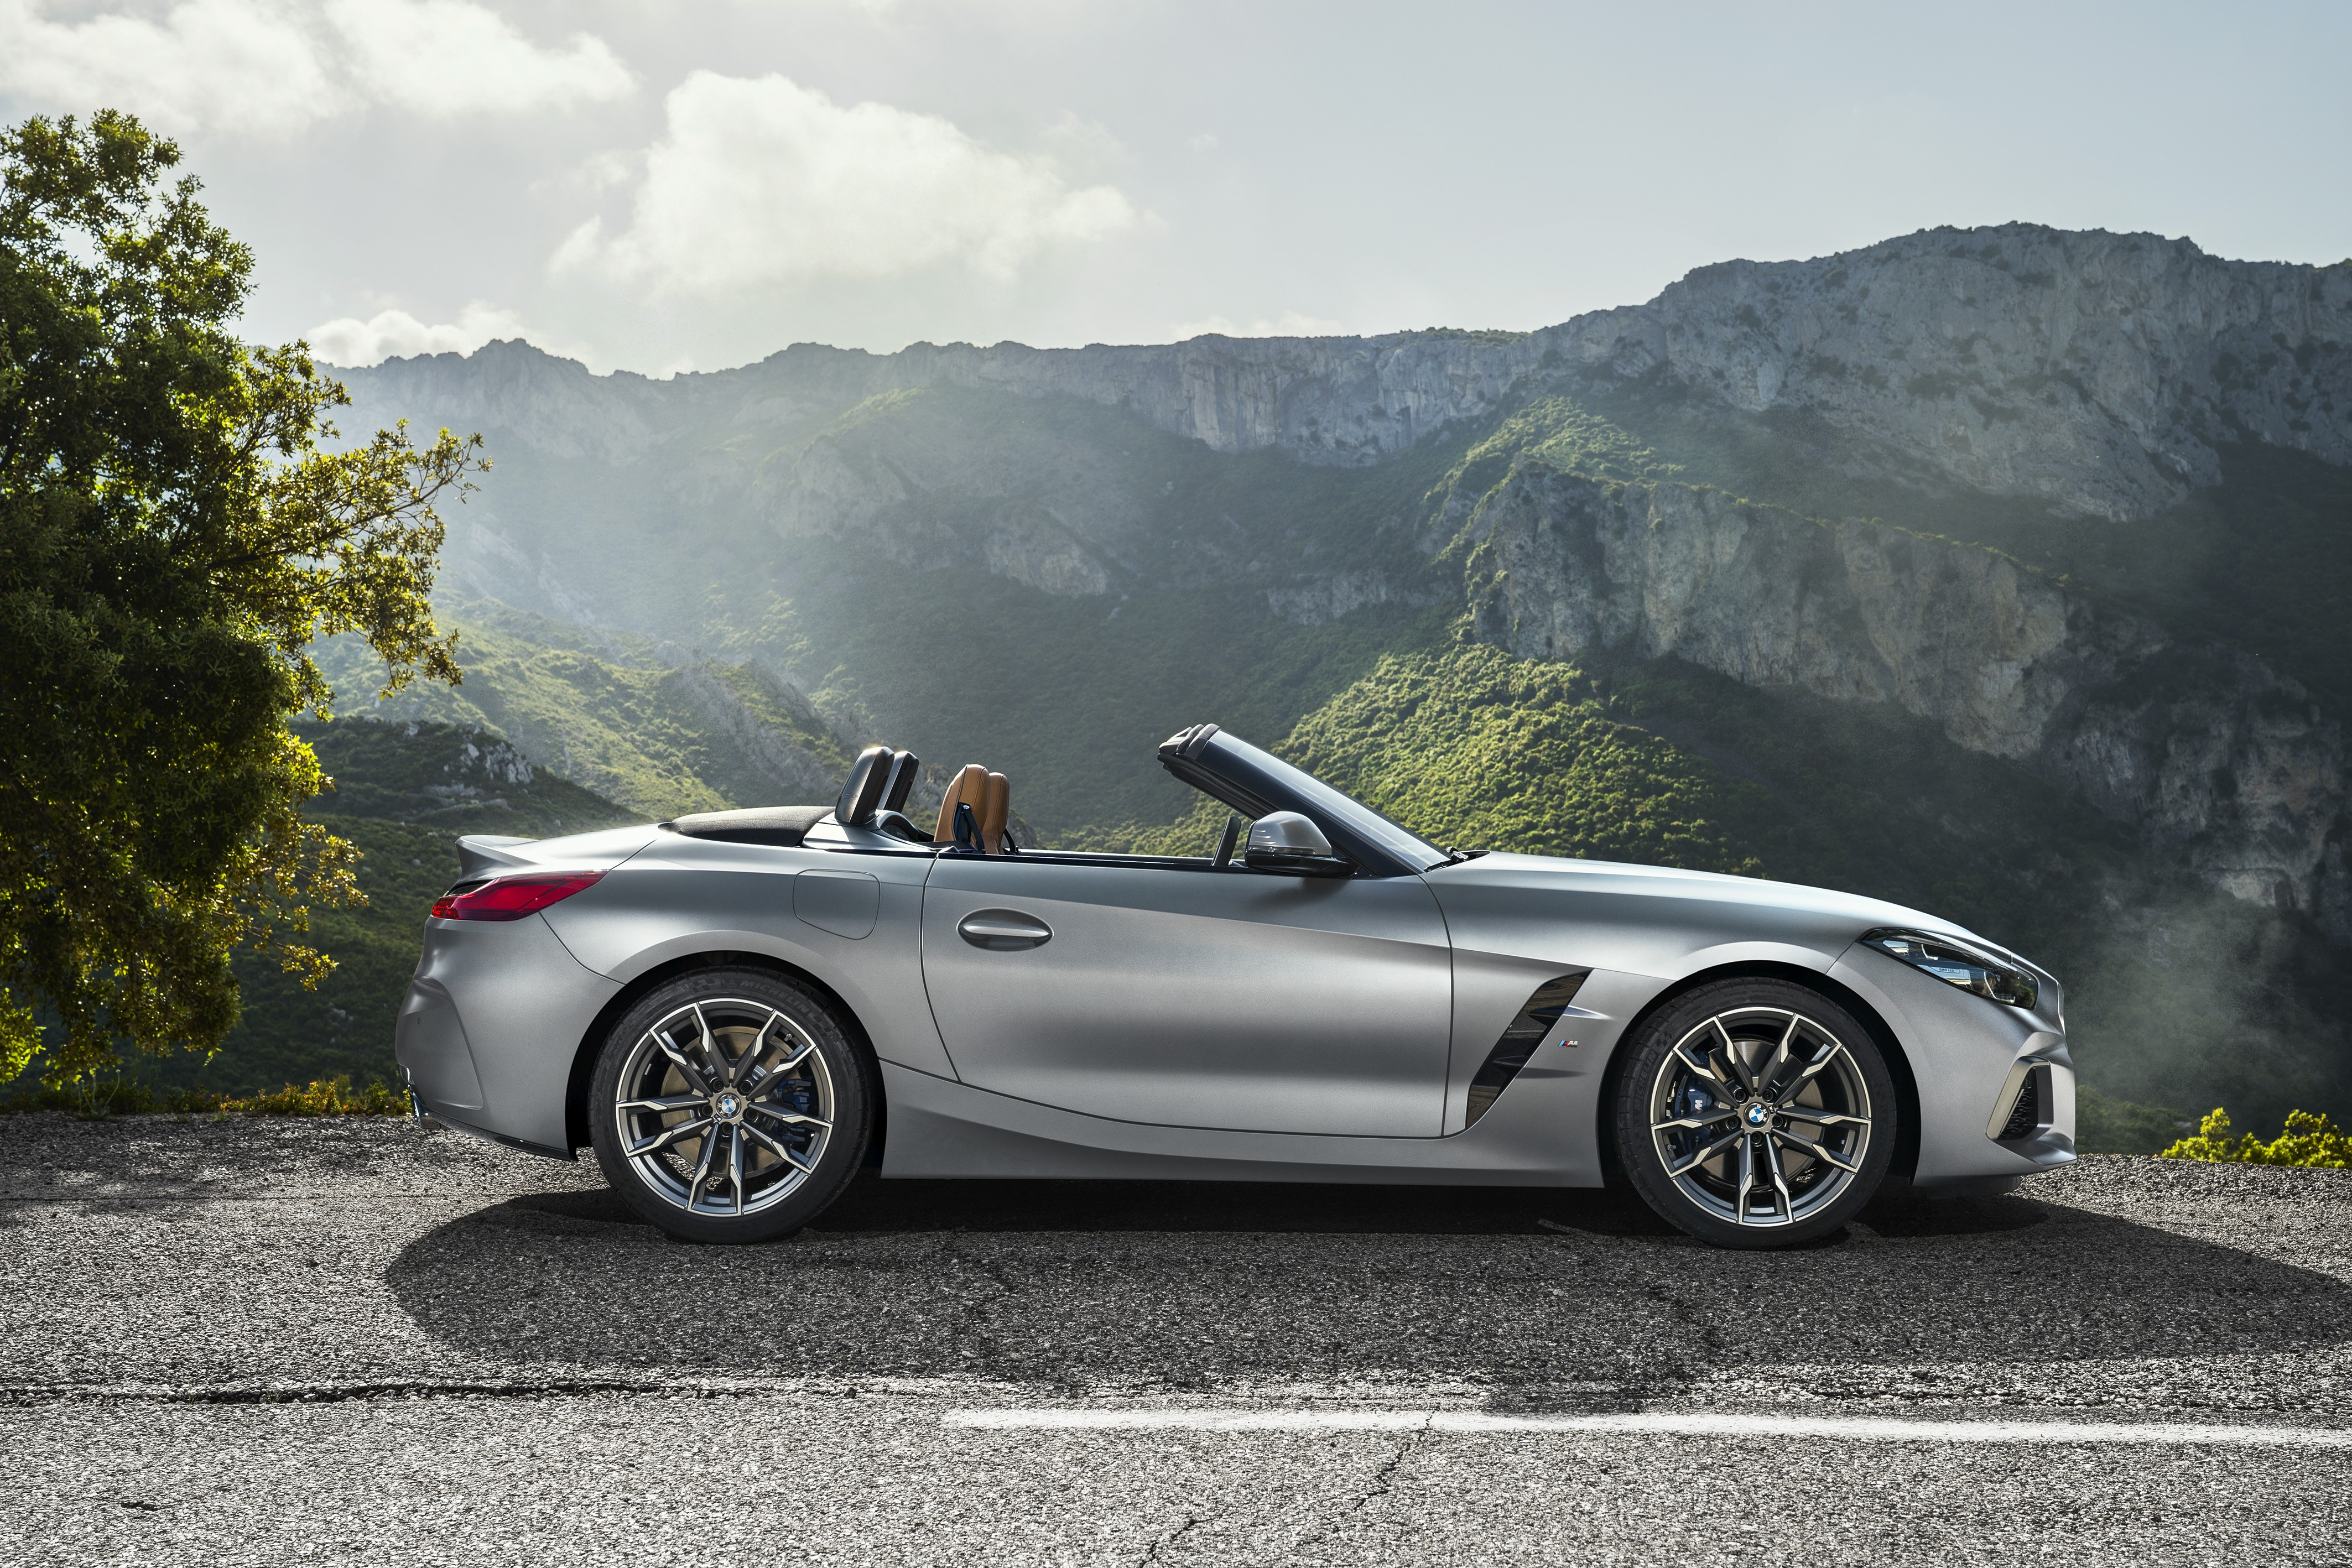 2020 BMW Z4 Full Specs, New Photos Released Ahead of Paris ...